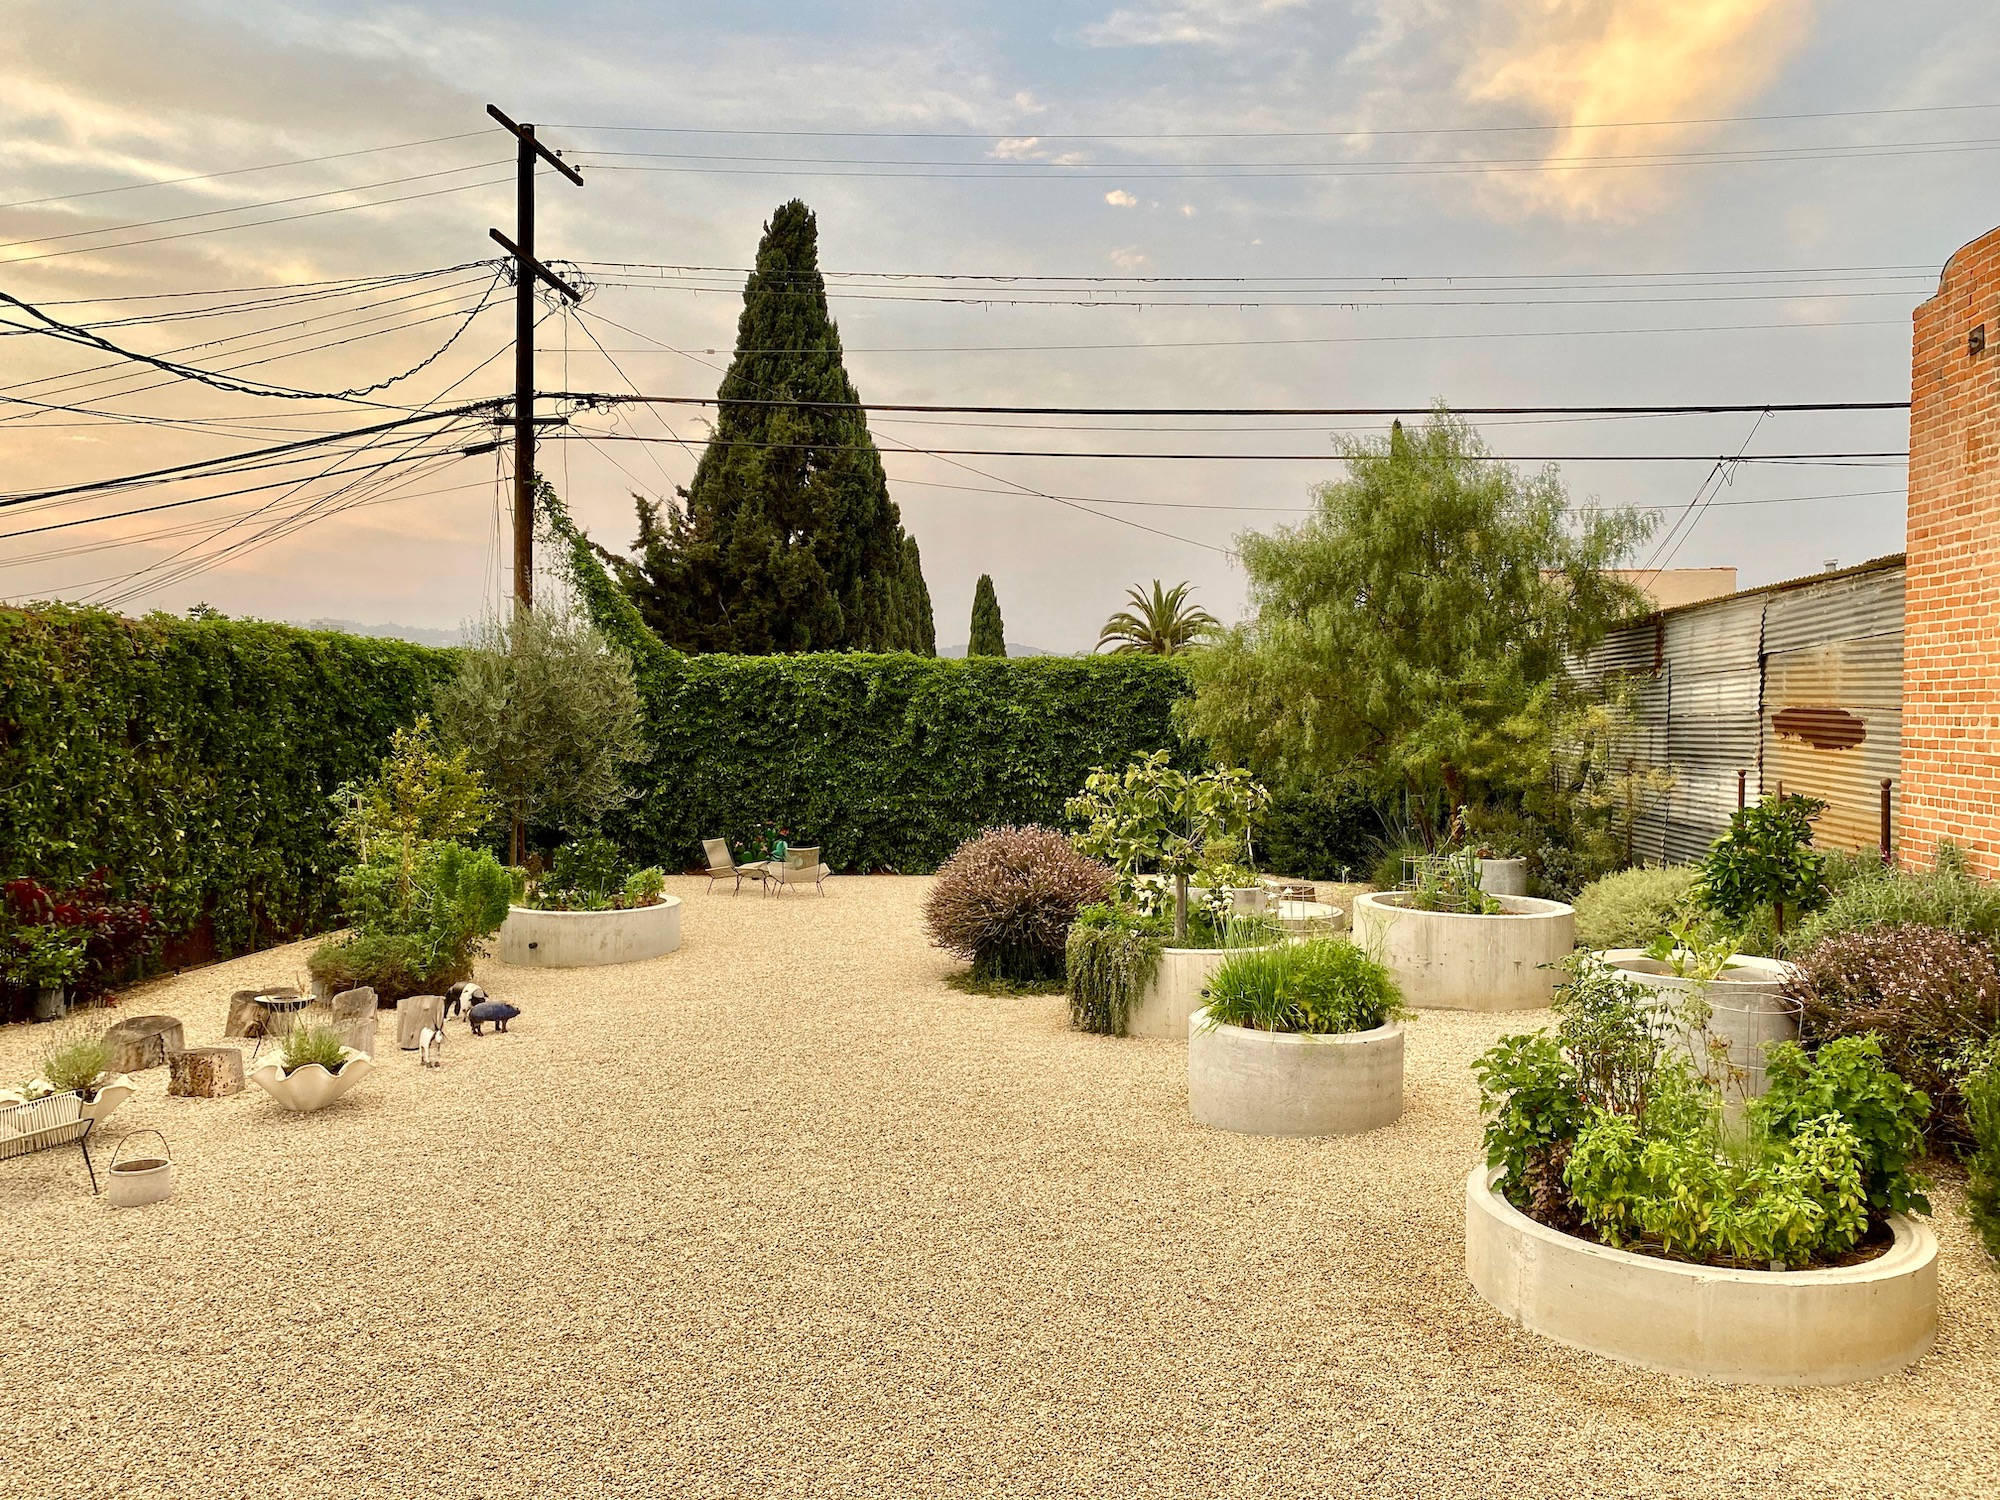 """The gravel garden oasis that now greets visitors. """"I was interested in creating a more sculptural setting that would provide a different type of edible garden experience. Since I planned on hosting families with kids, I had imagined large, soft, round shapes that children might enjoy—the scale, curves, and recesses of hidden space around which to play and plant."""""""